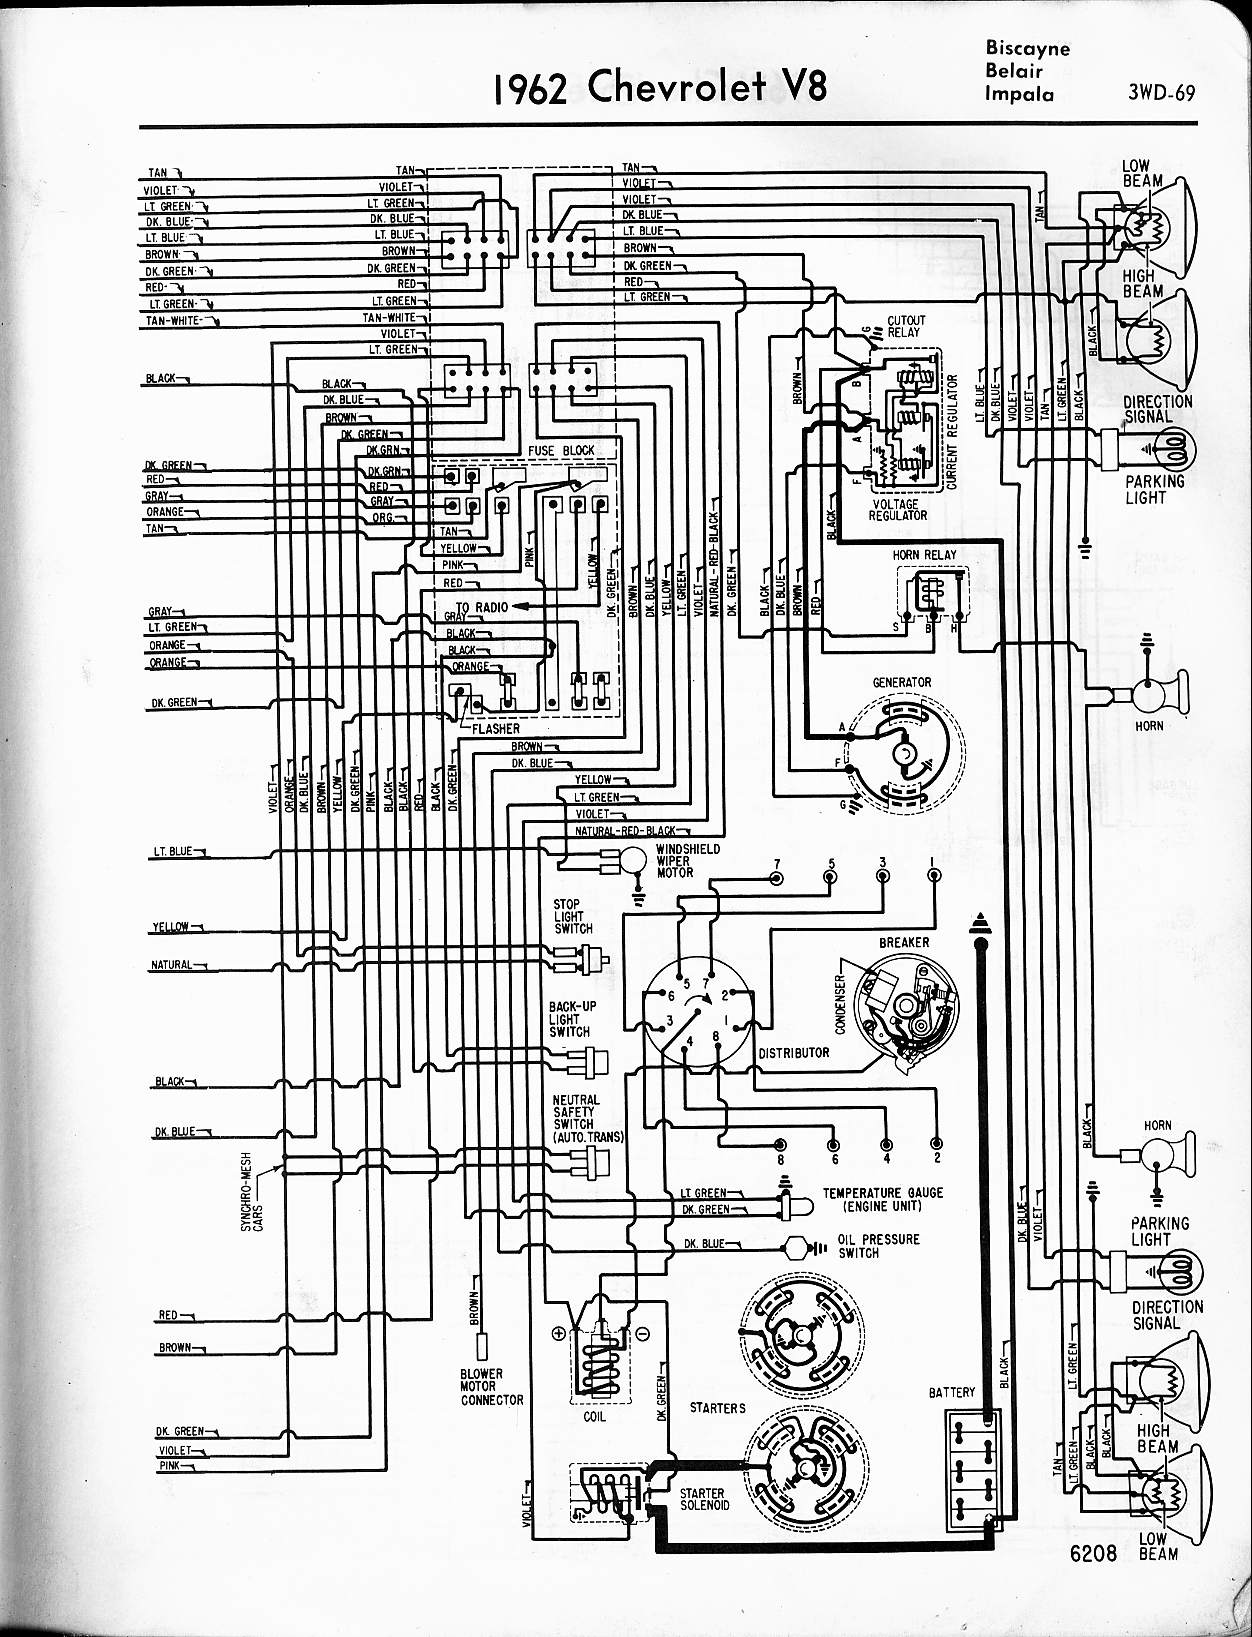 66 corvair wiring diagram just wiring data rh ag skiphire co uk